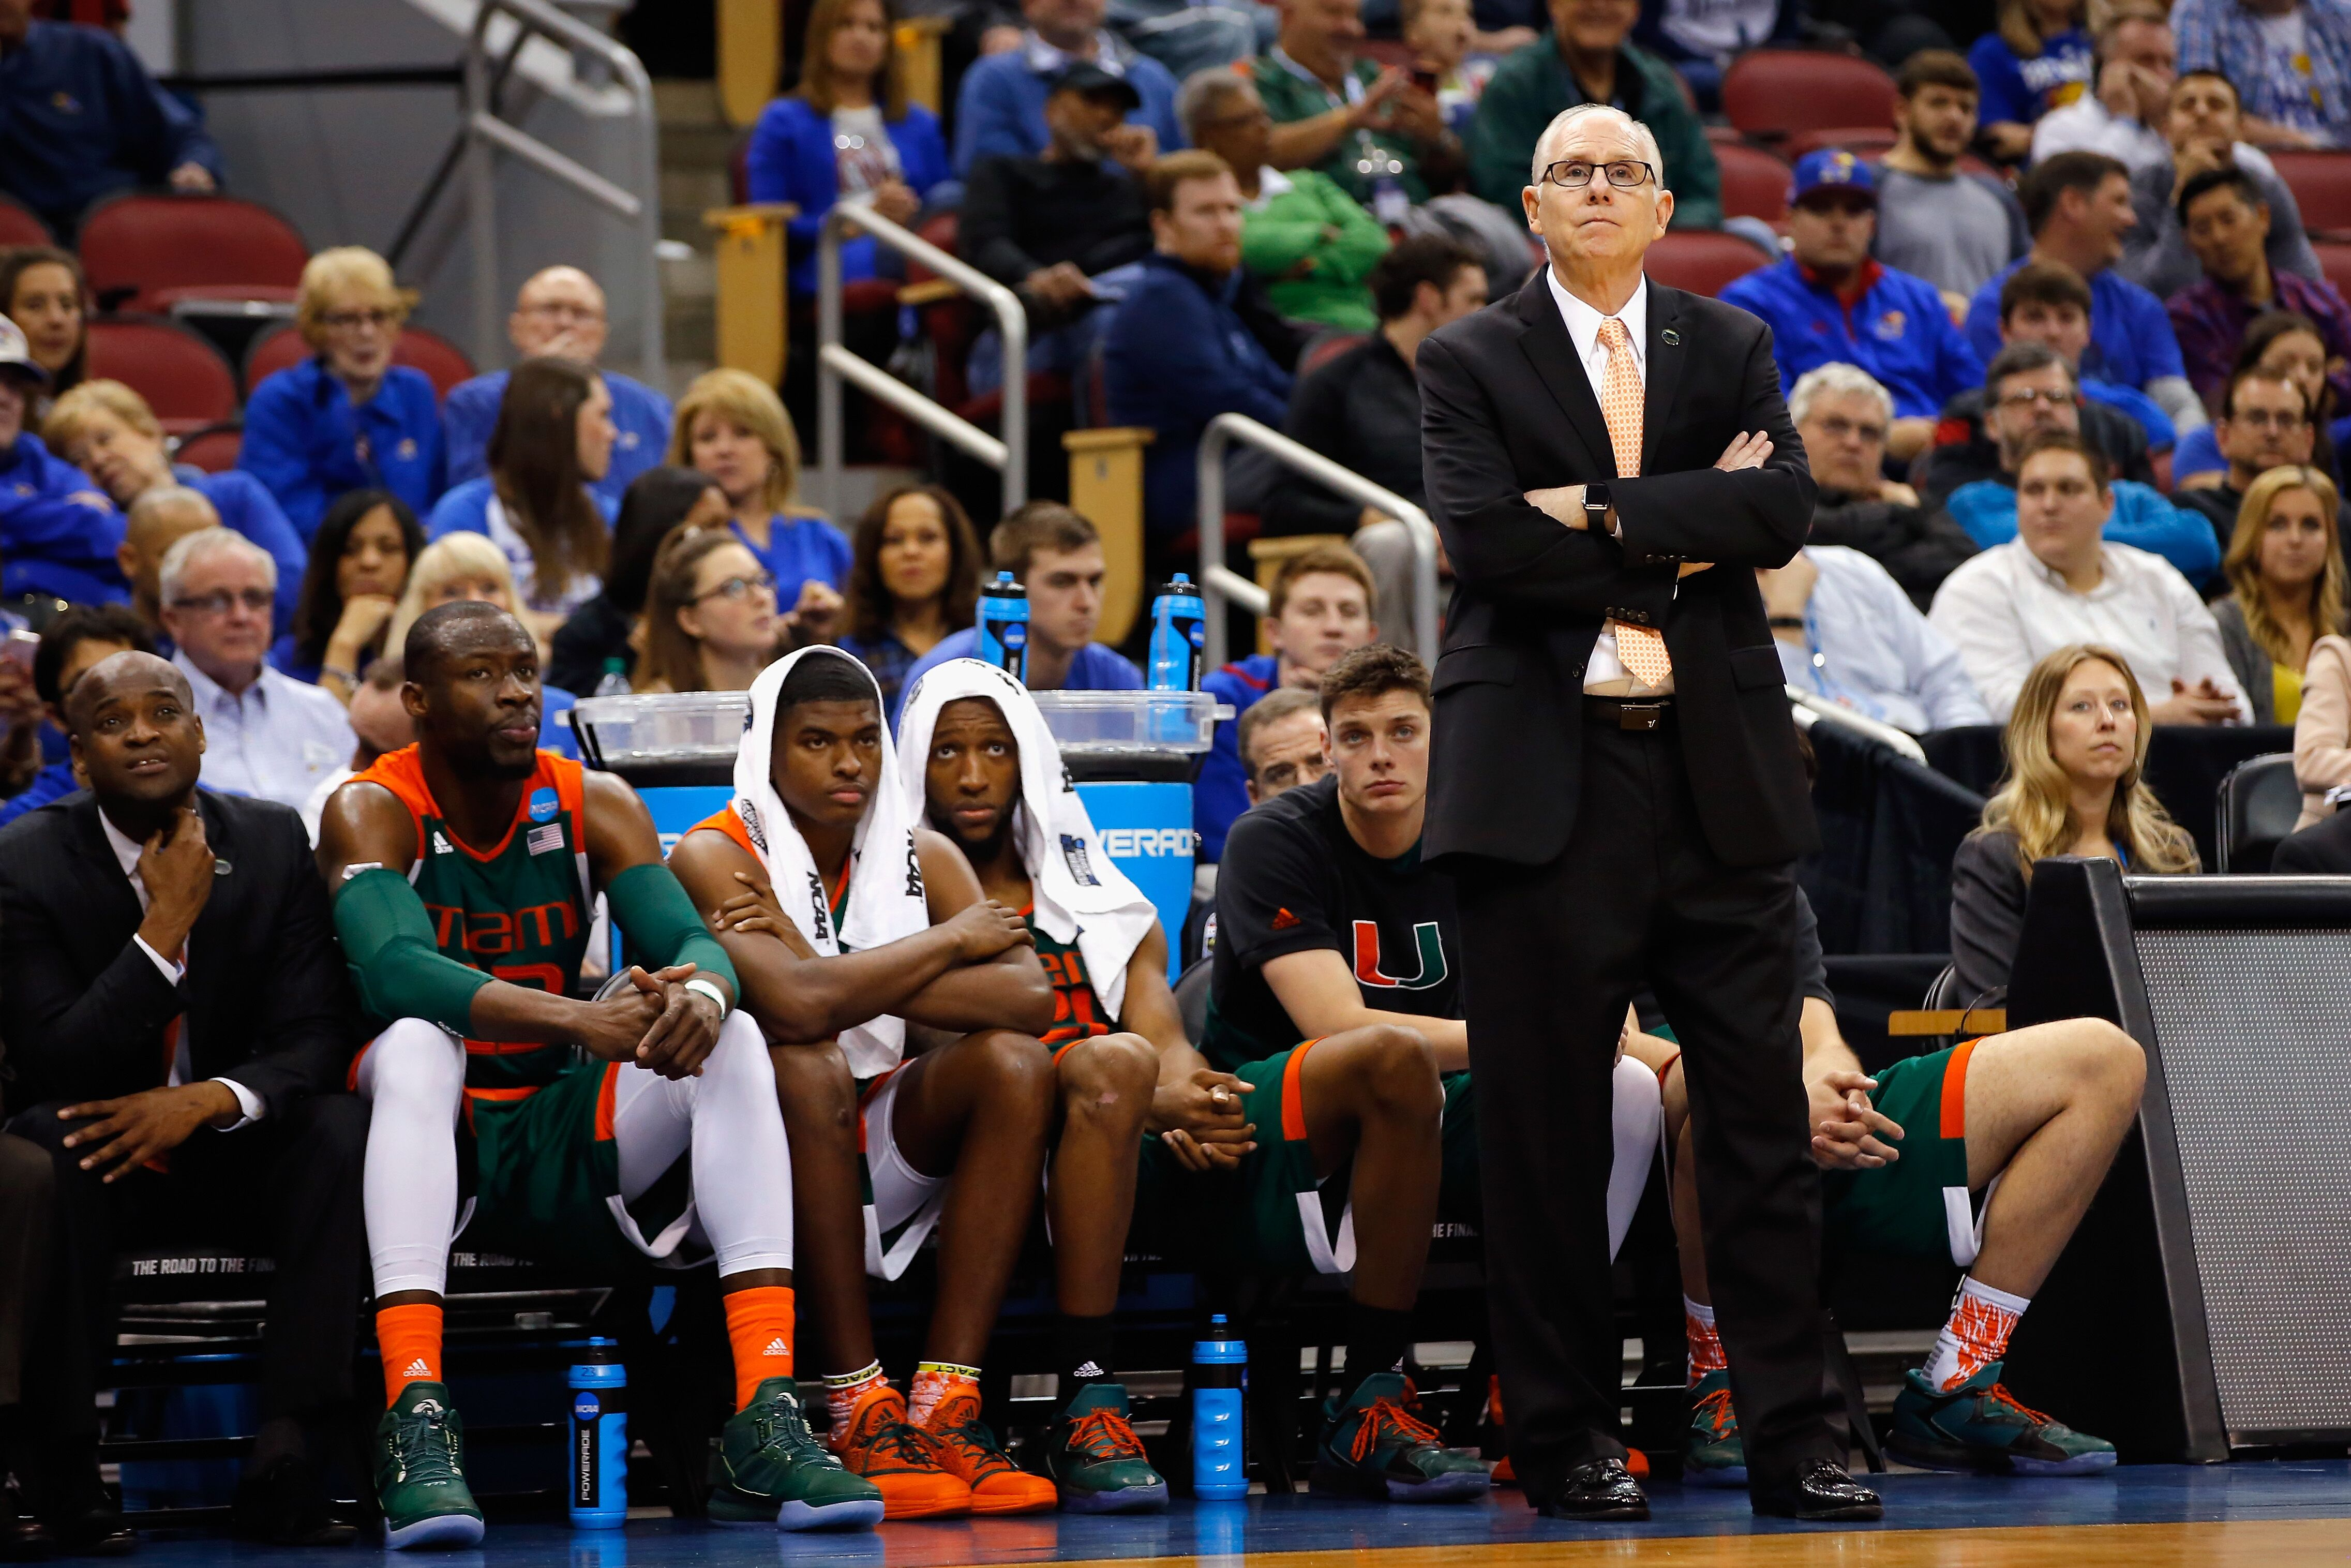 2017 18 Uk Basketball Schedule Now Complete: Miami Basketball 2017-18 Basketball Schedule Released